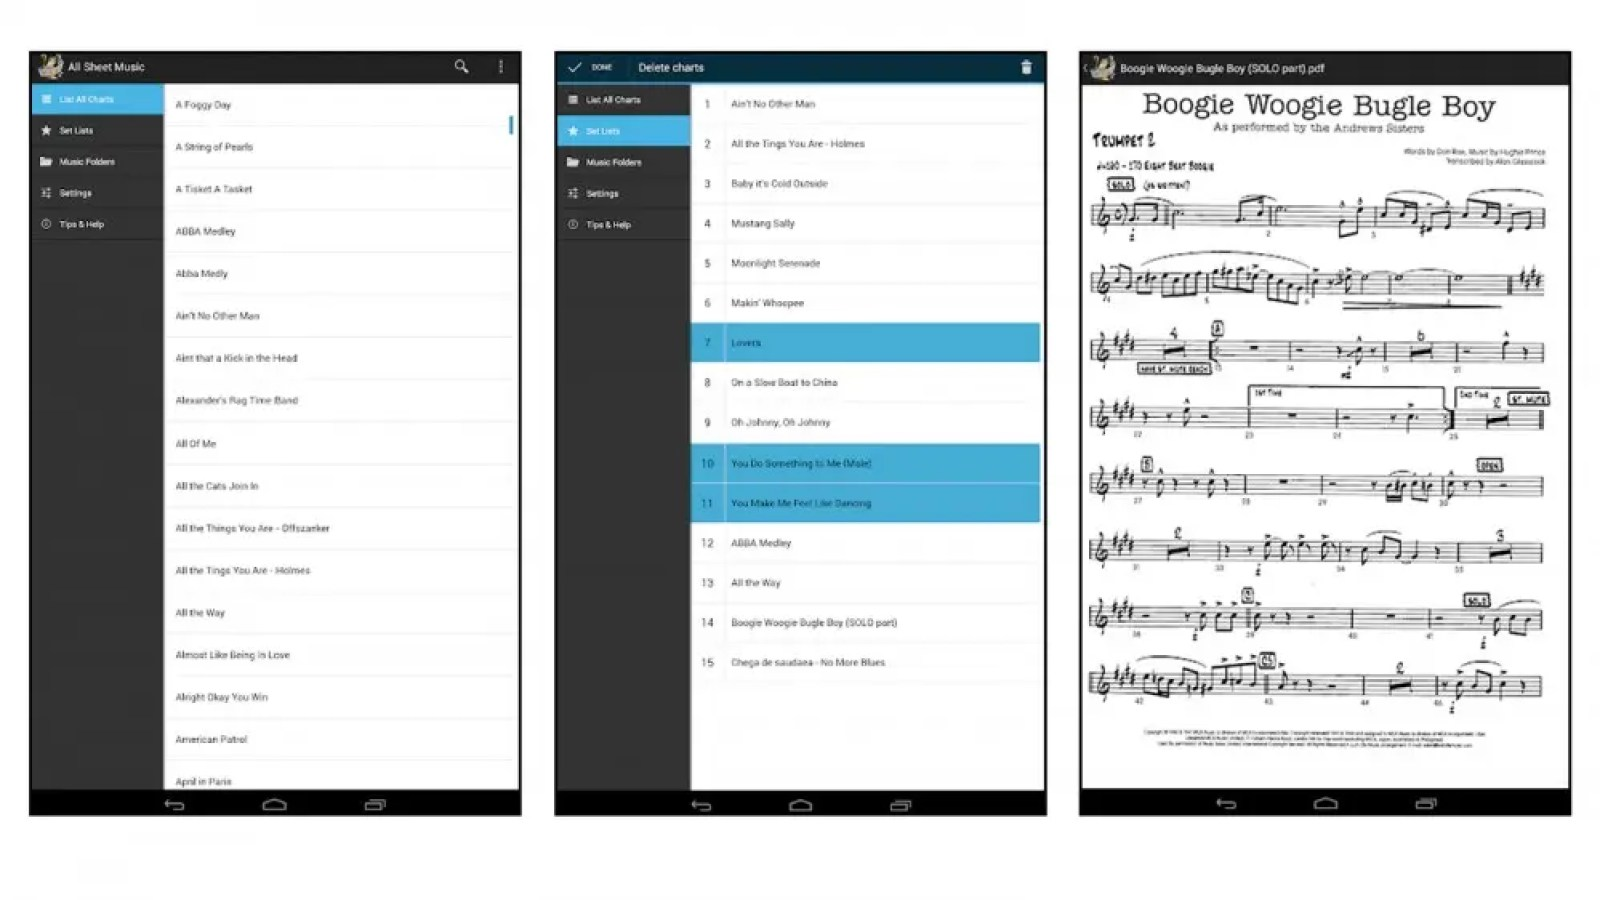 Orpheus app for android users